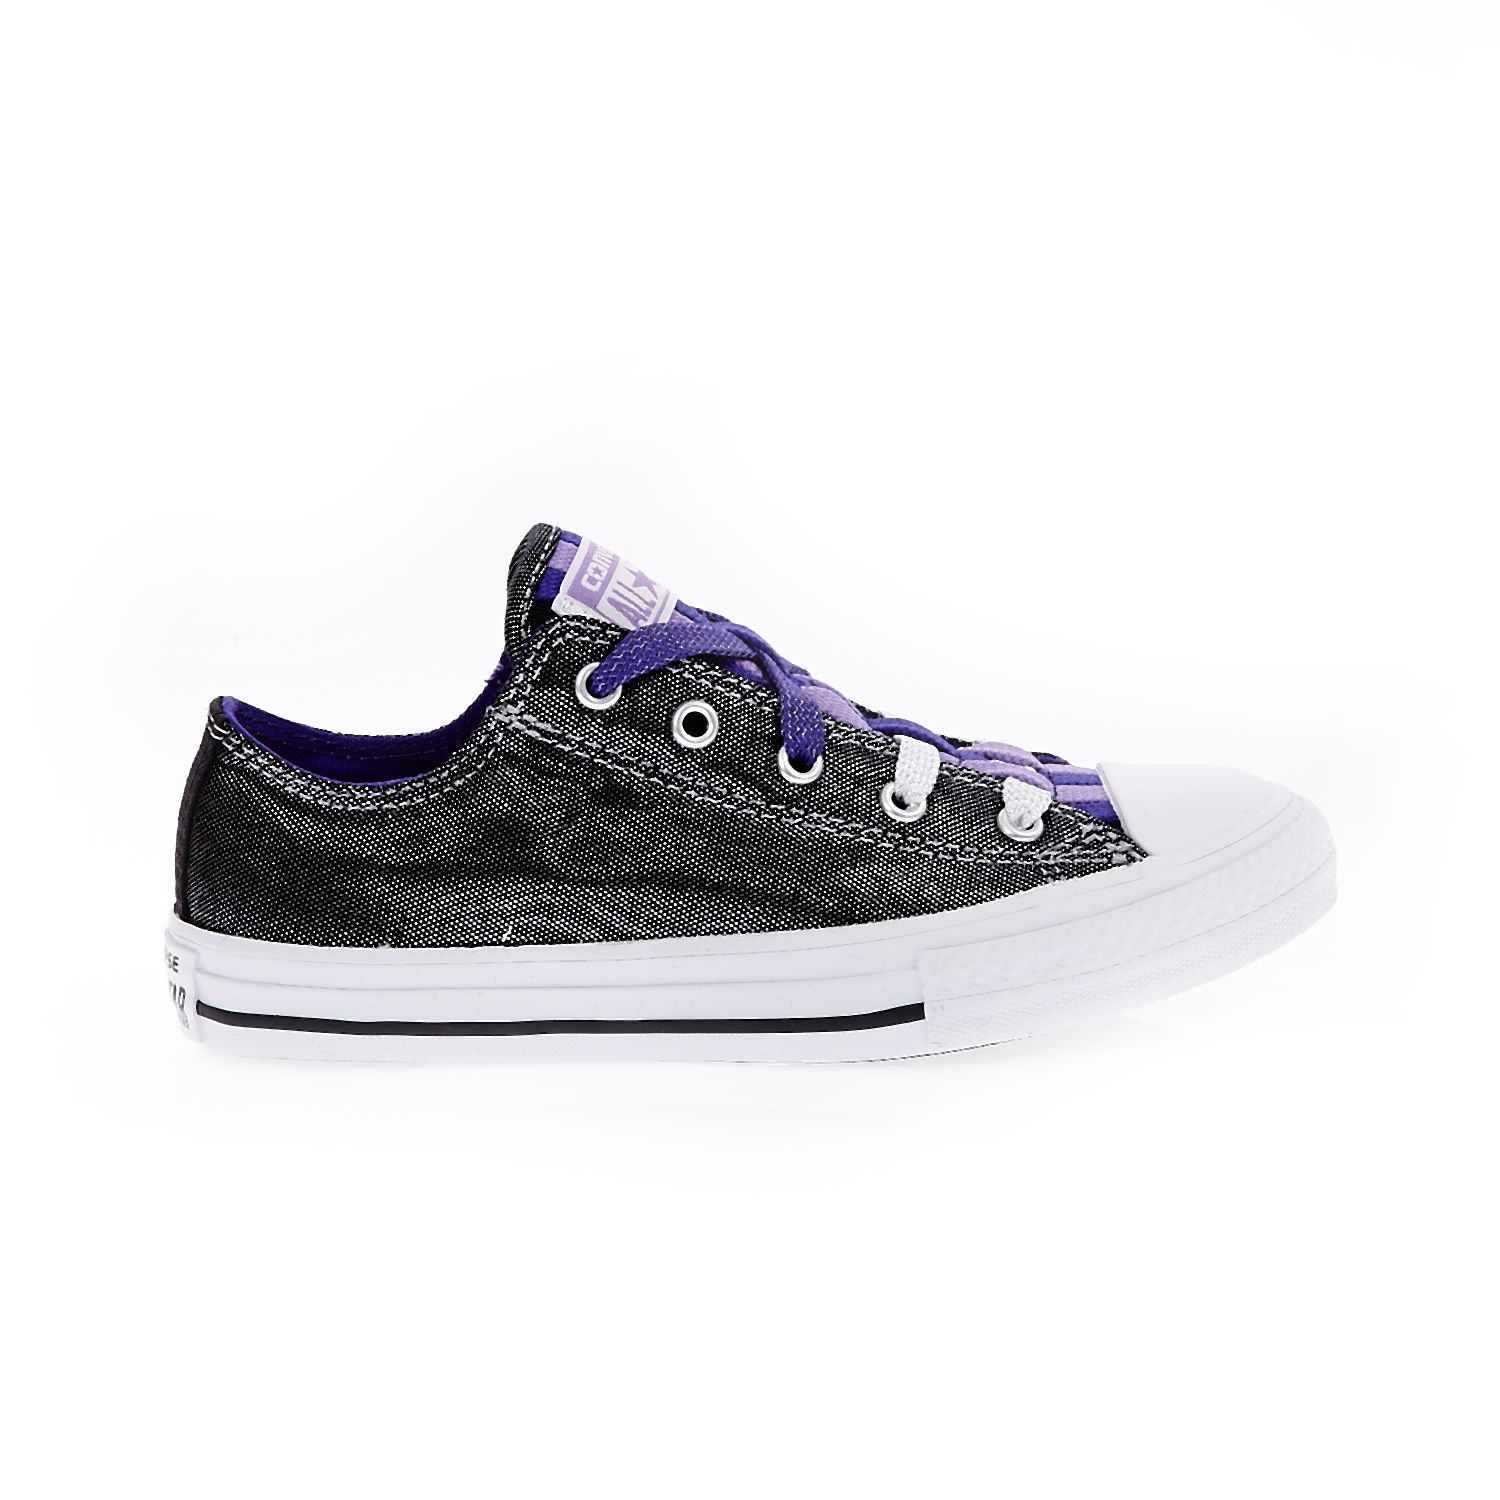 CONVERSE – Παιδικά παπούτσια Chuck Taylor All Star Loop ανθρακί